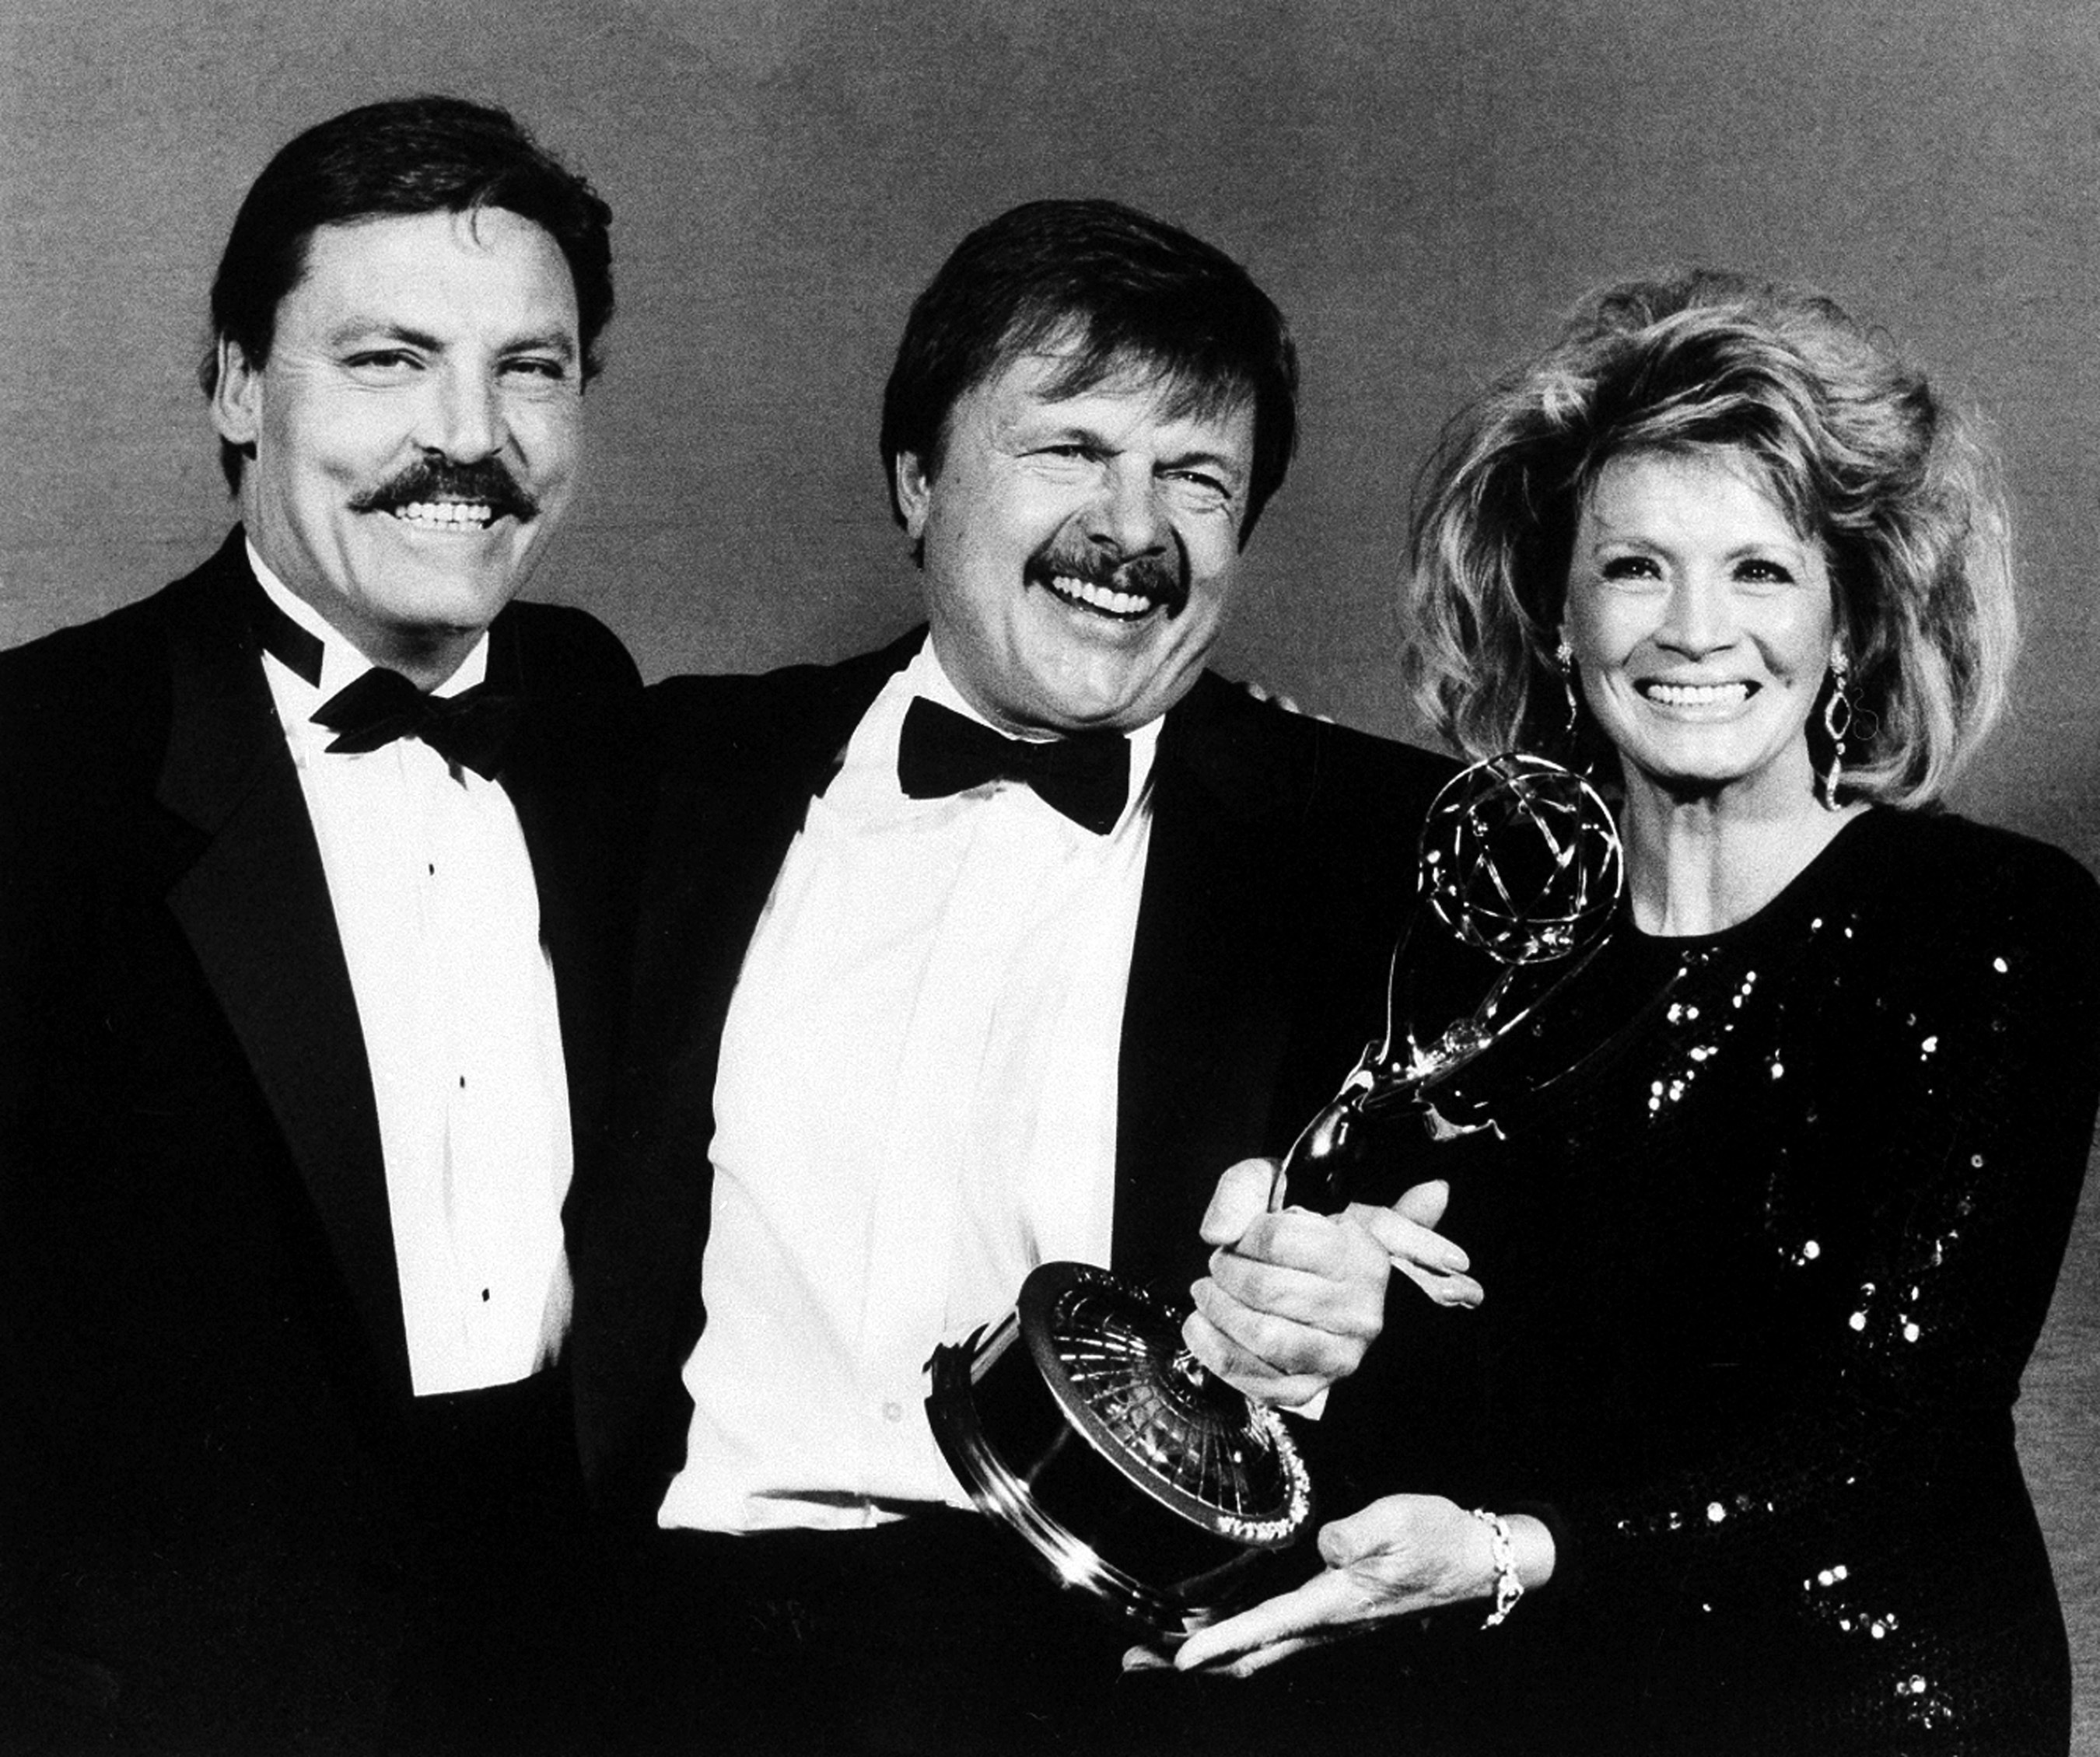 John Karlen (center)poses with presenters Stacy Keach and Angie Dickinson after winning an Emmy for best supporting actor in 1986.